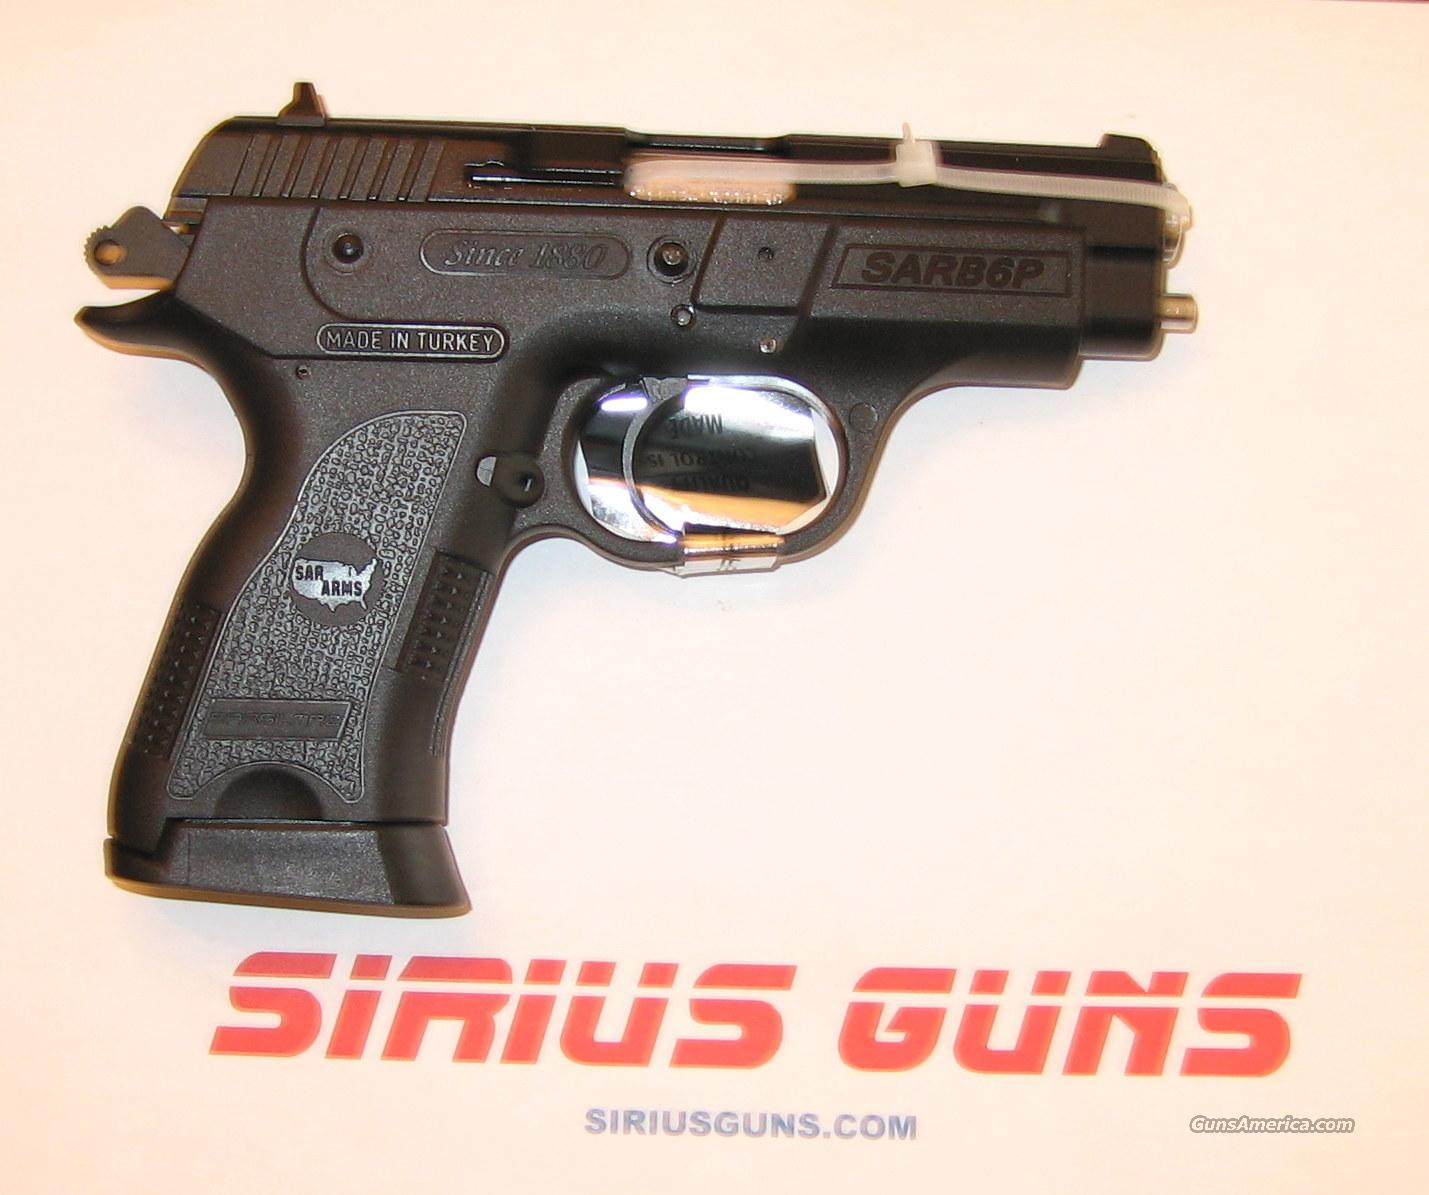 "EAA SAR B6 P 9mm 3.8""B 13+1 B6P W/ 2 MAGS  Guns > Pistols > EAA Pistols > Other"